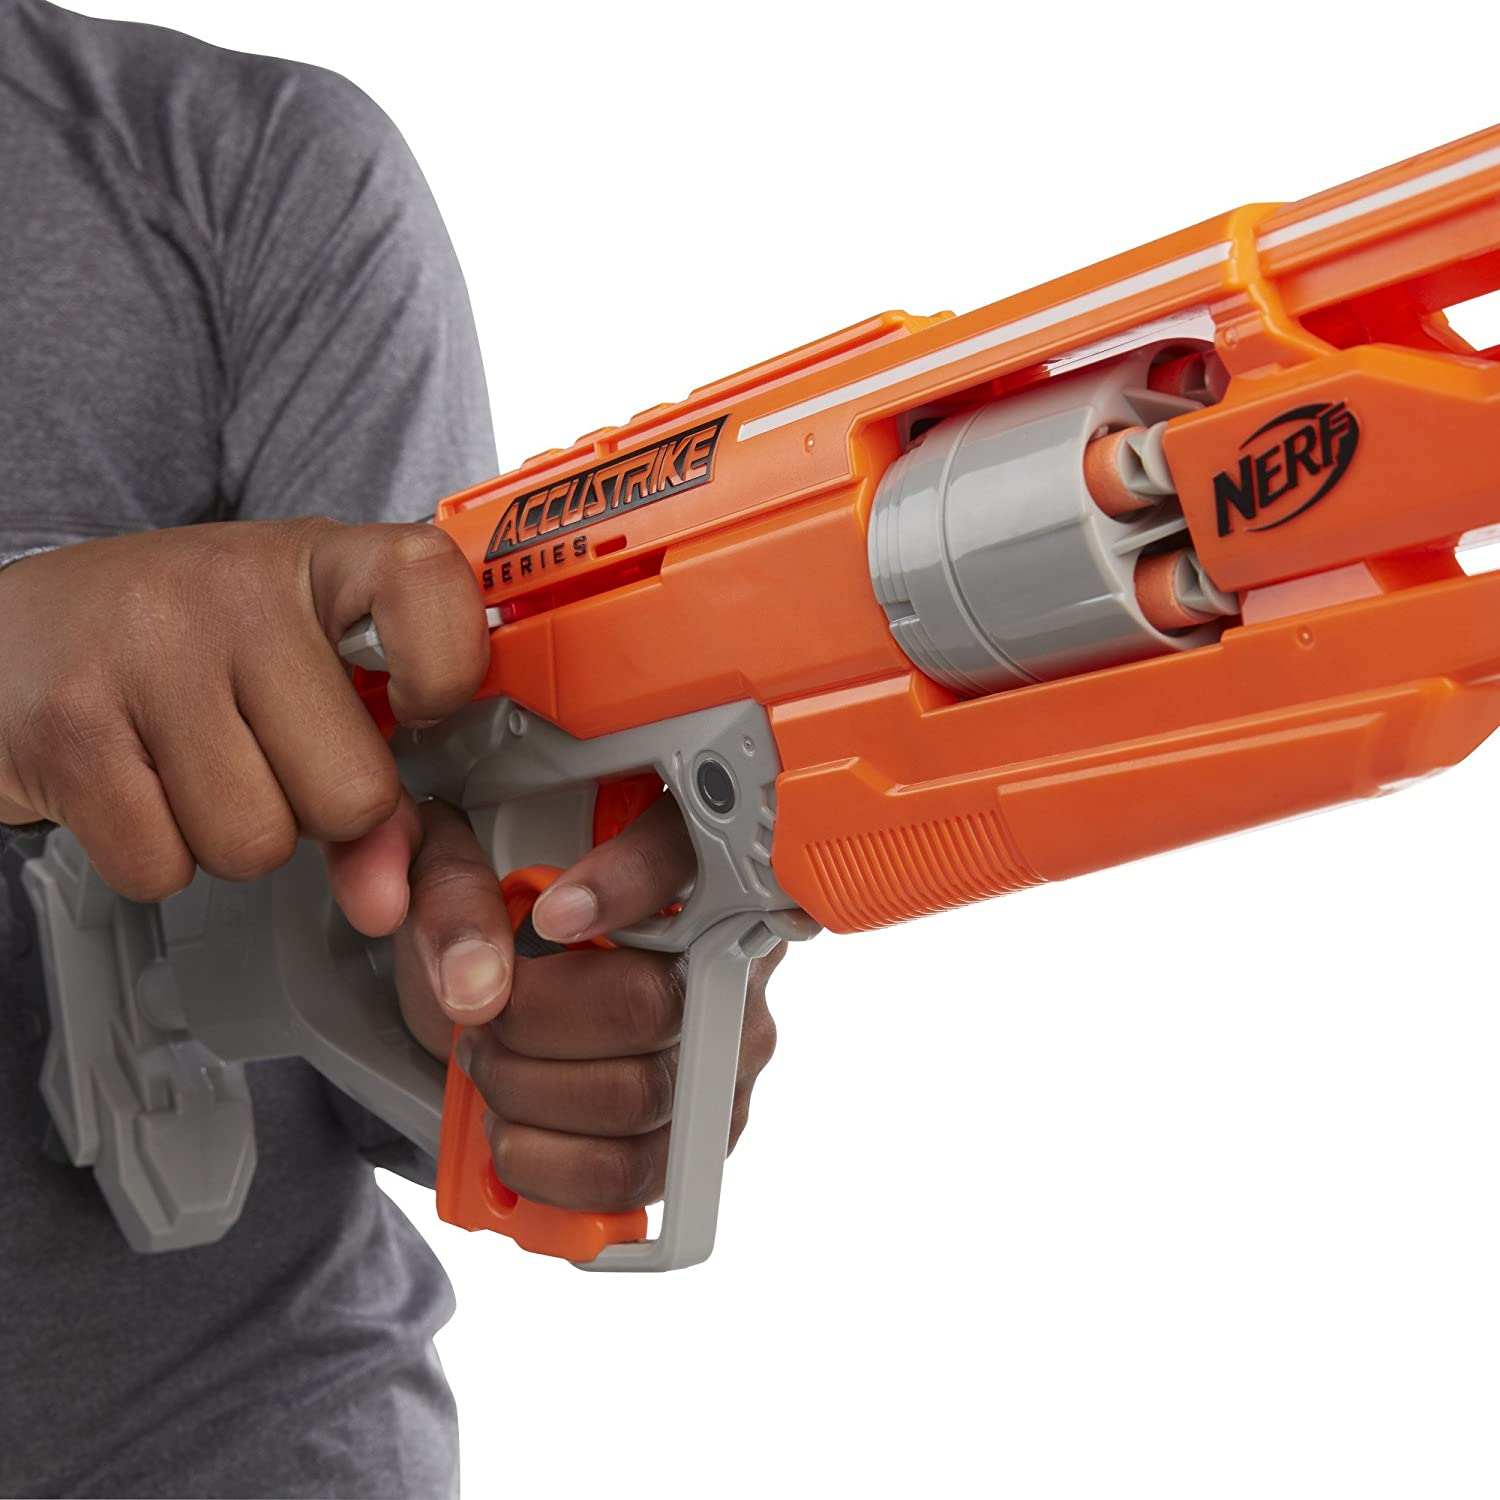 NERF N-Strike Elite Accustrike Series Alphahawk ONLY $14.16 (Reg. $30)  SHIPPED!! – Coupons & Promo Codes